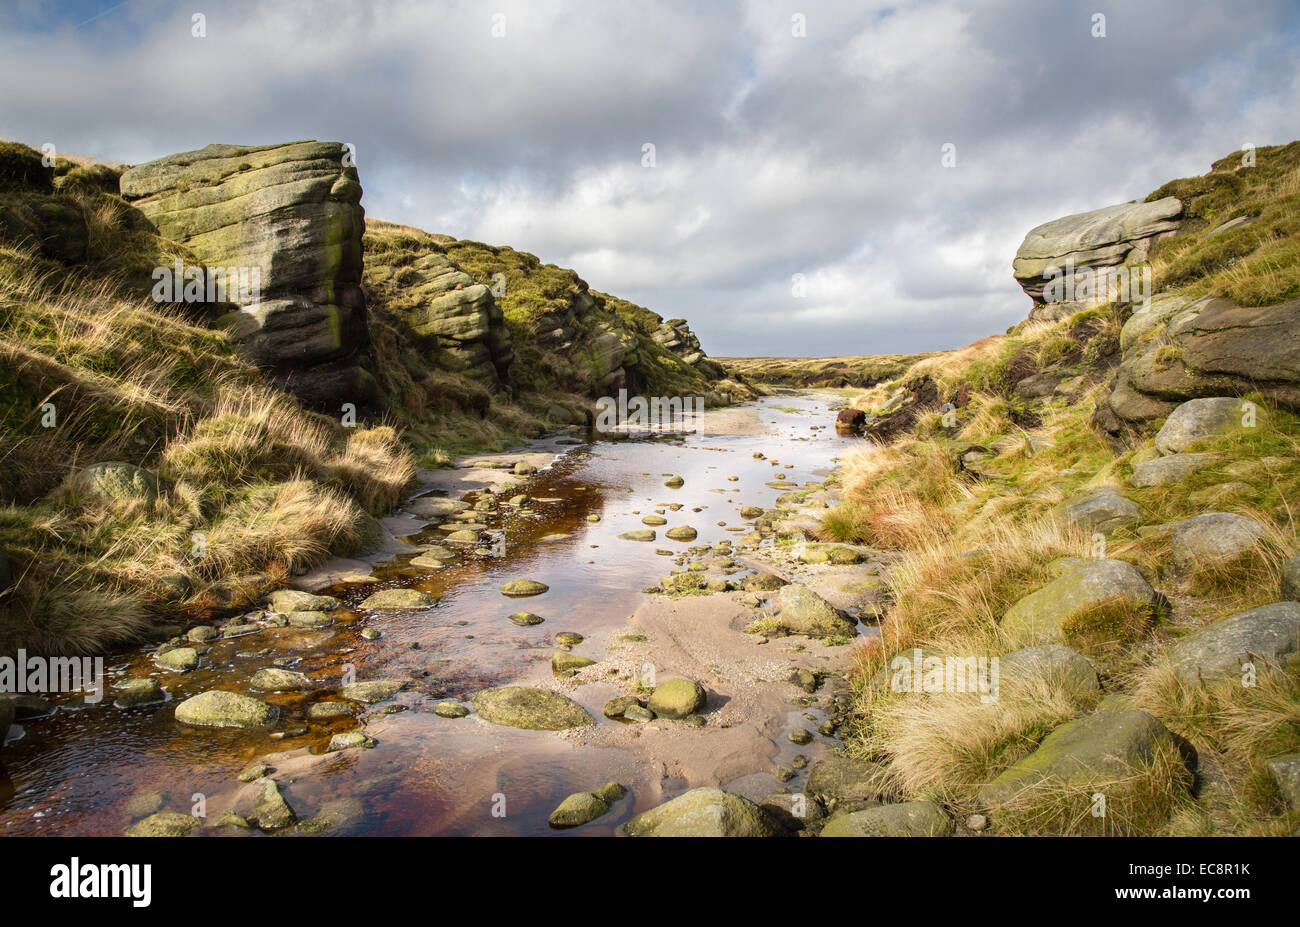 KInder Gates on the river Kinder on Kinder Scout Derbyshire Peak District UK - Stock Image